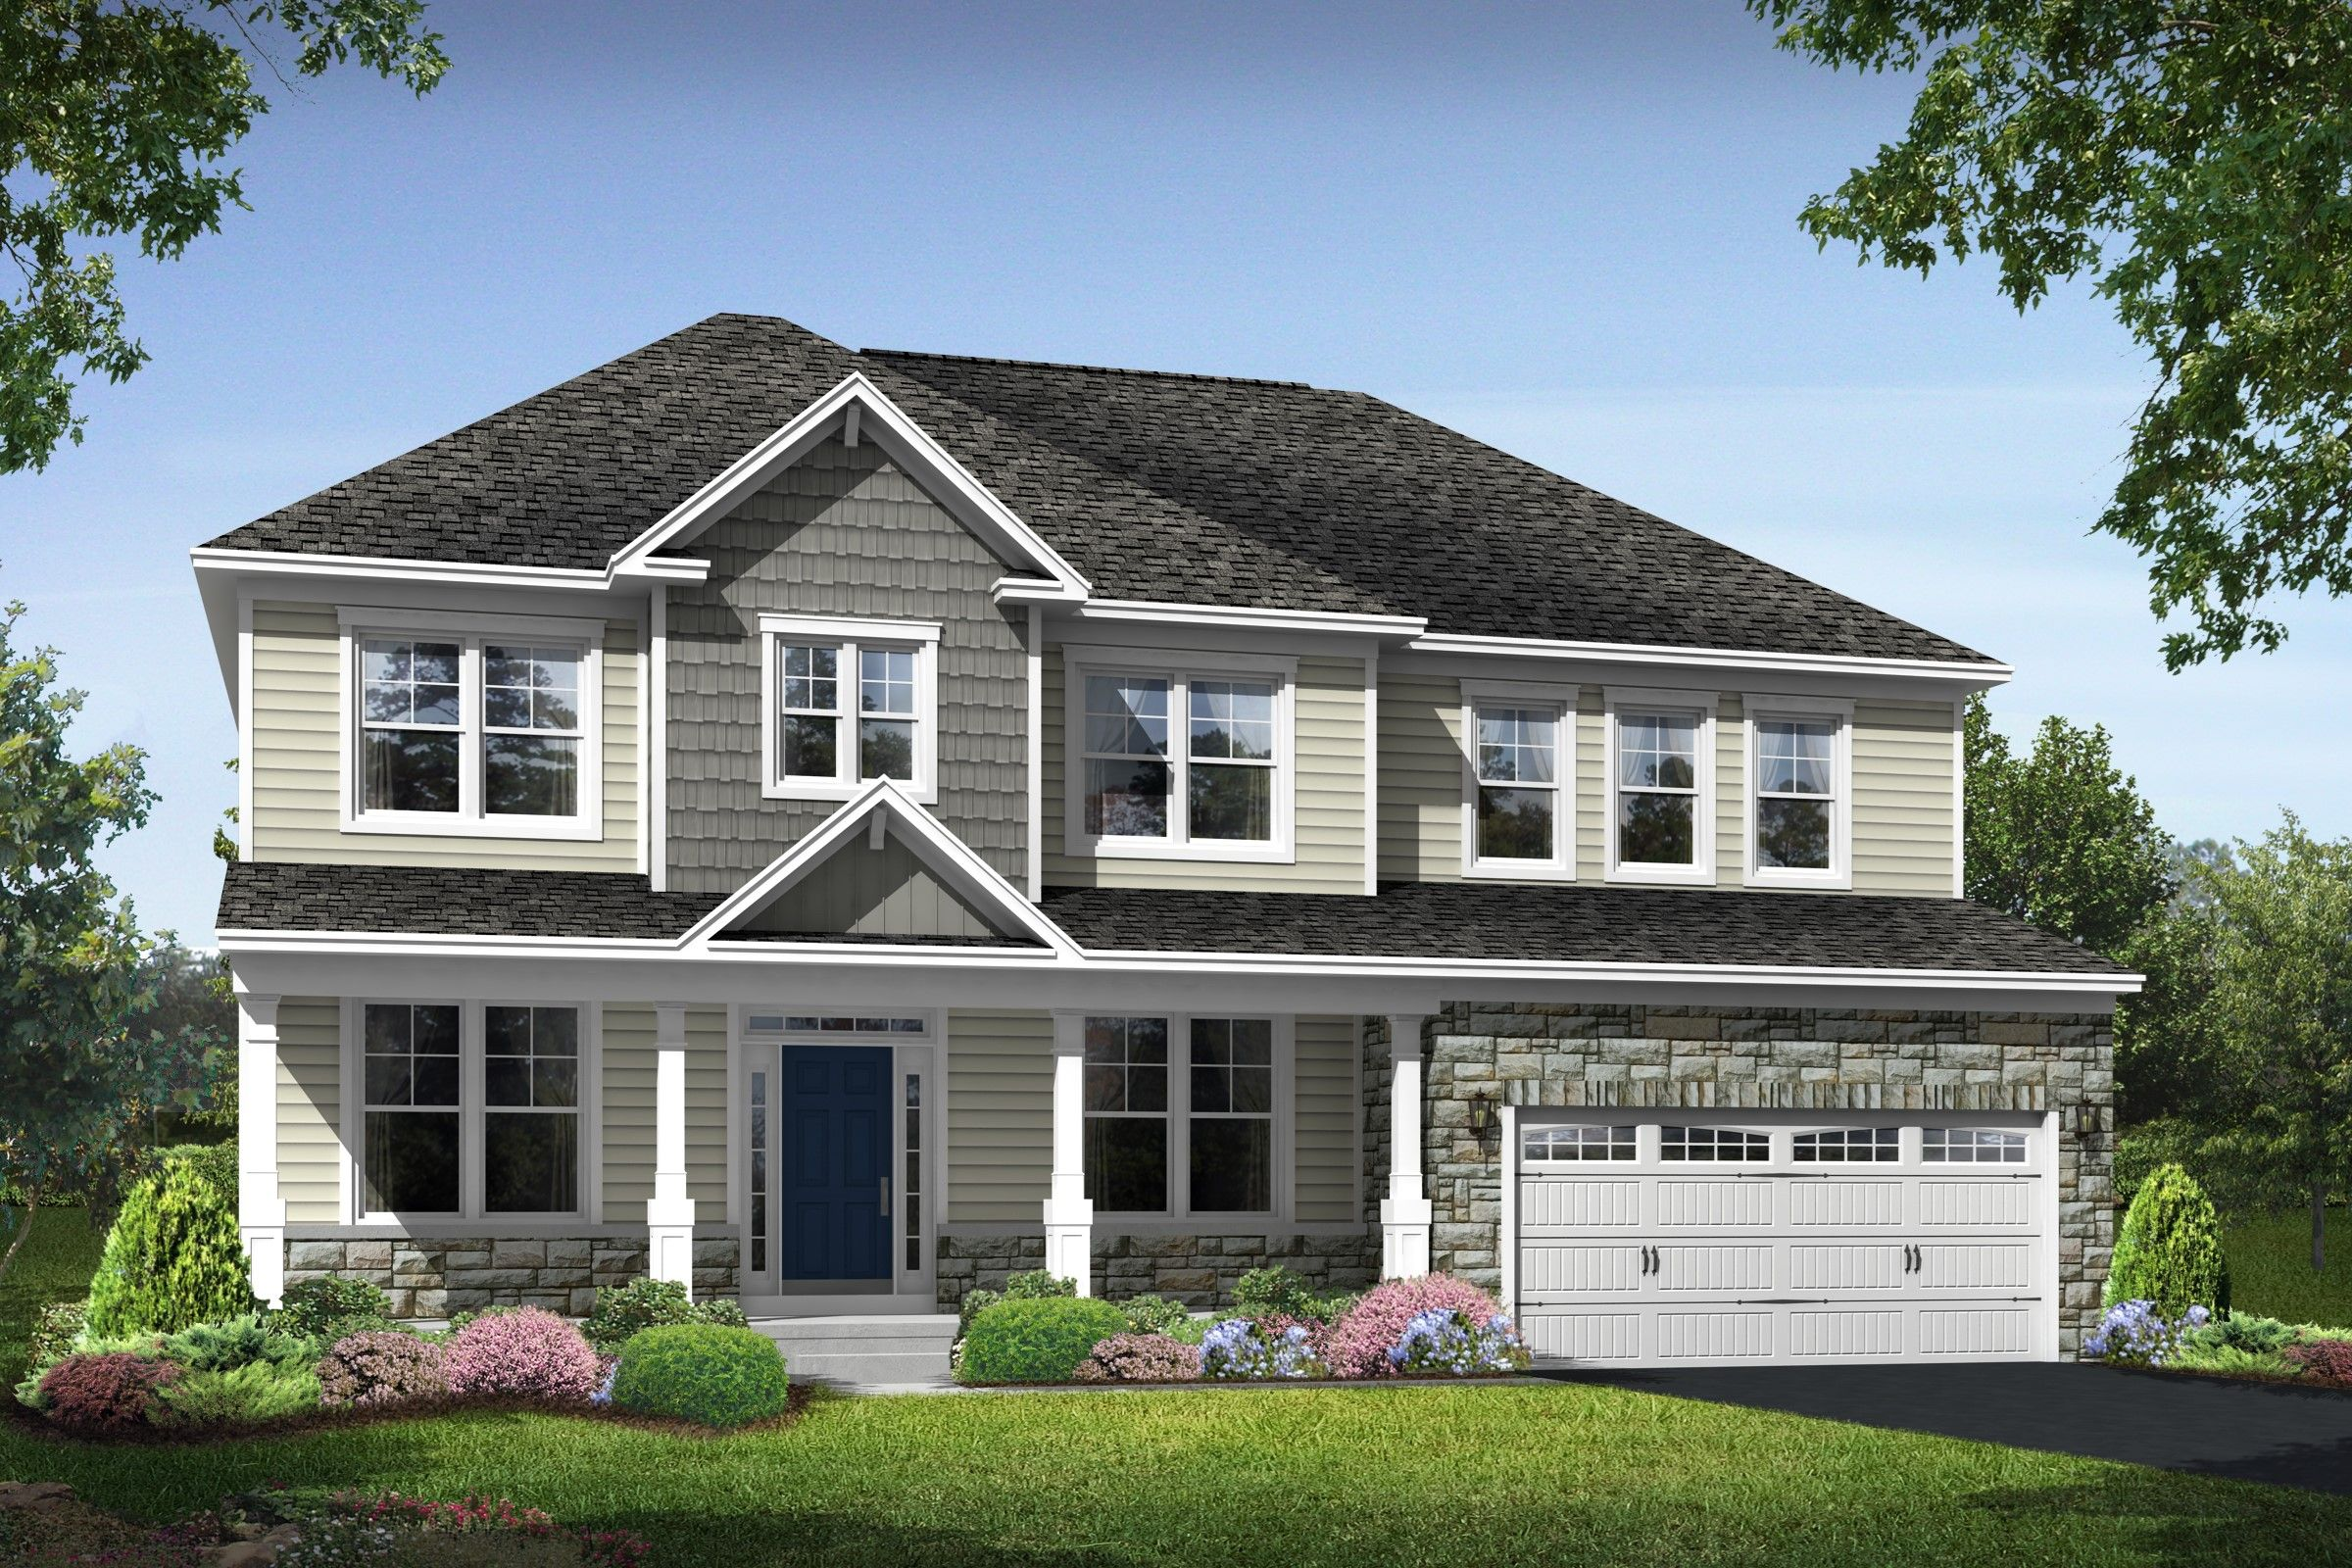 Single Family for Active at Magness Farms - Dover 1304 Merlot Drive Bel Air, Maryland 21015 United States